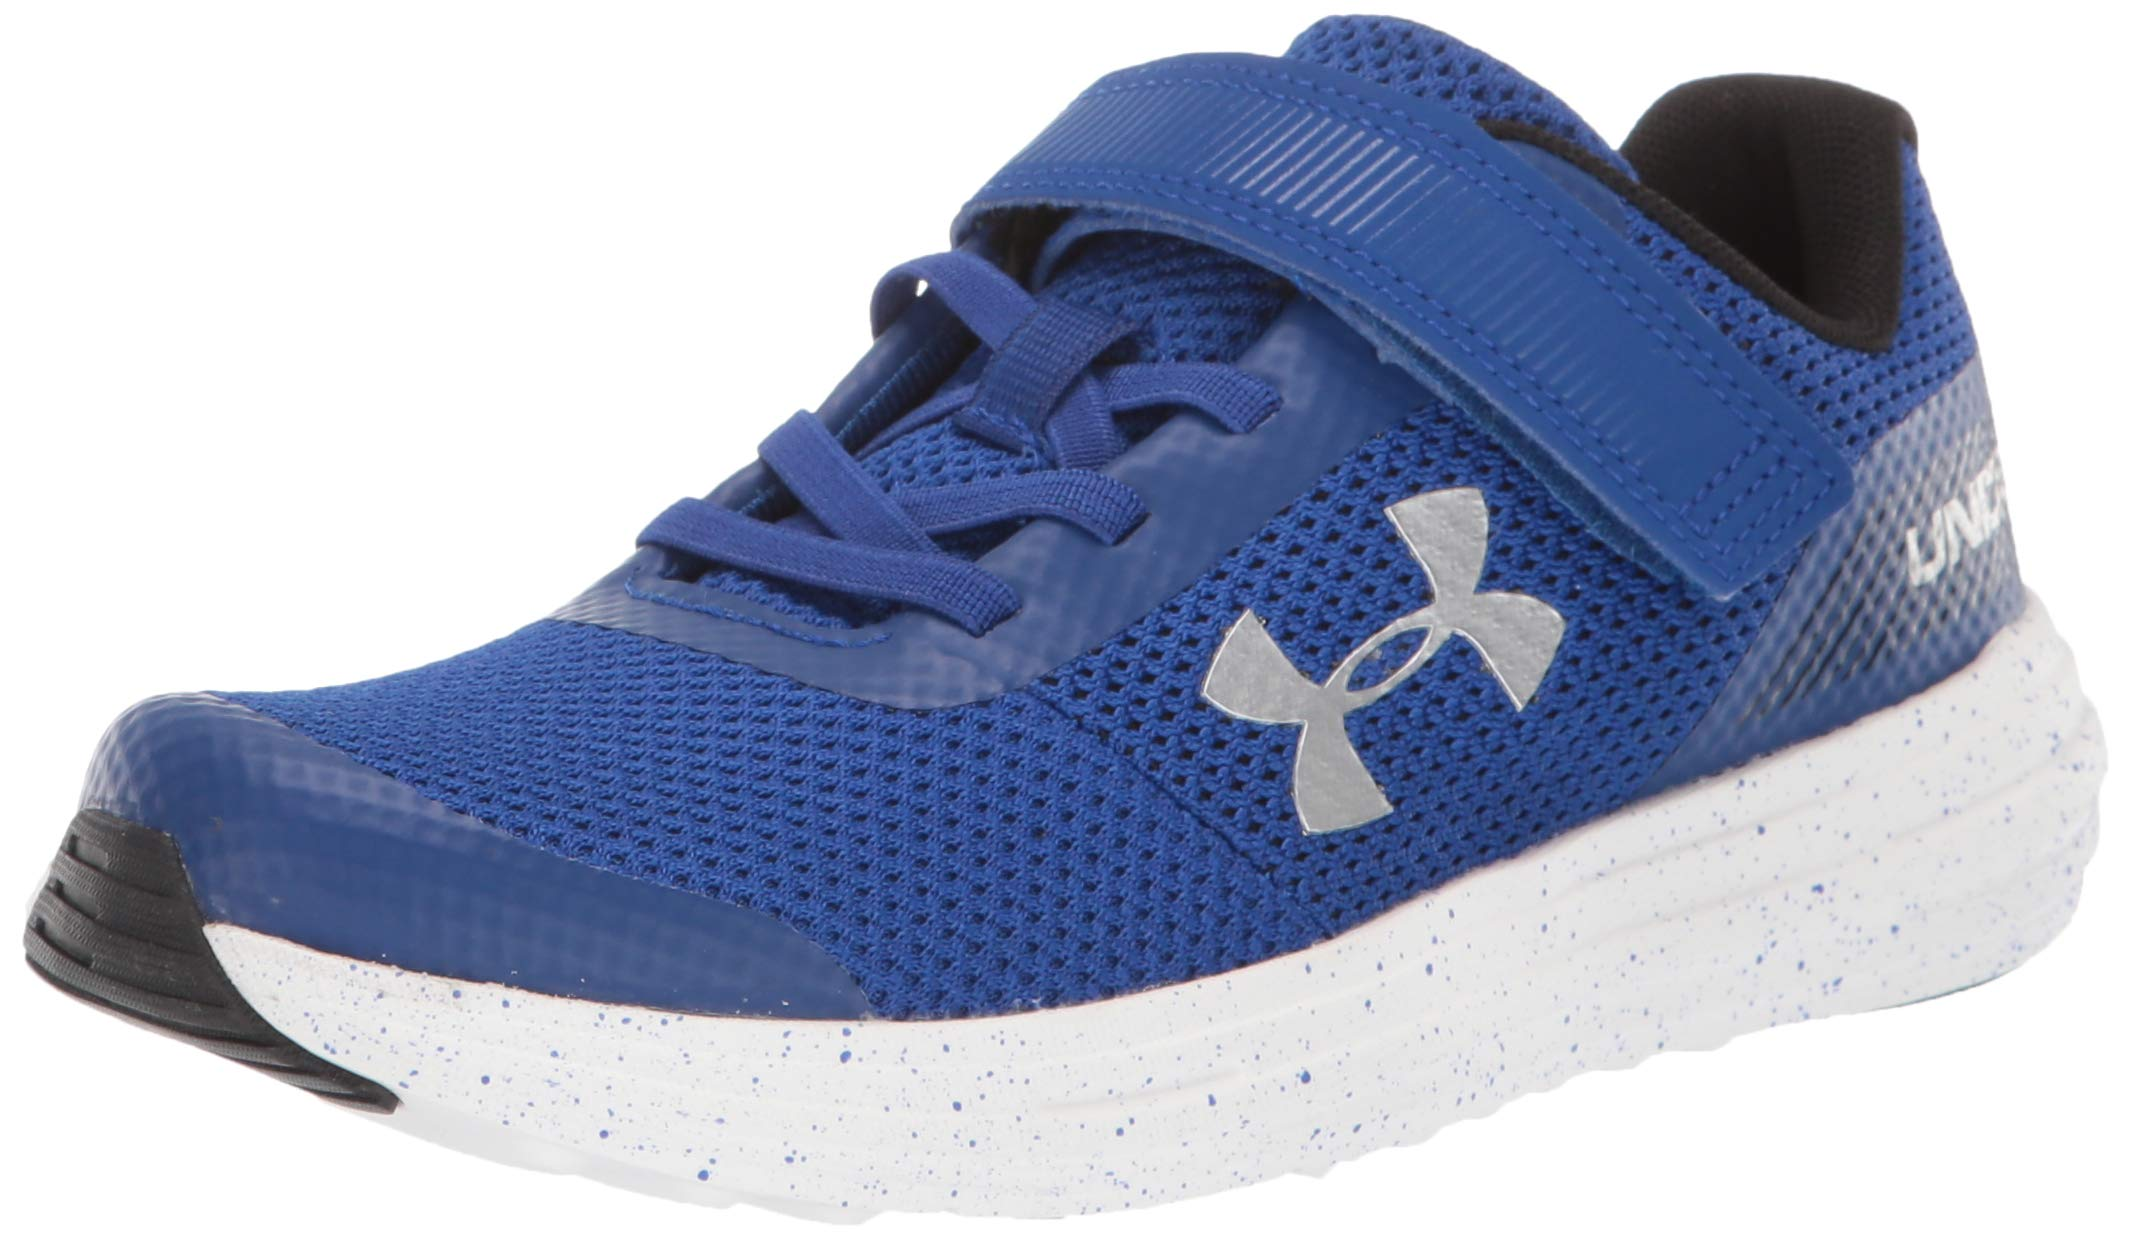 Under Armour Boys' Pre School Surge RN Alternate Closure Sneaker, Royal (404)/White, 1